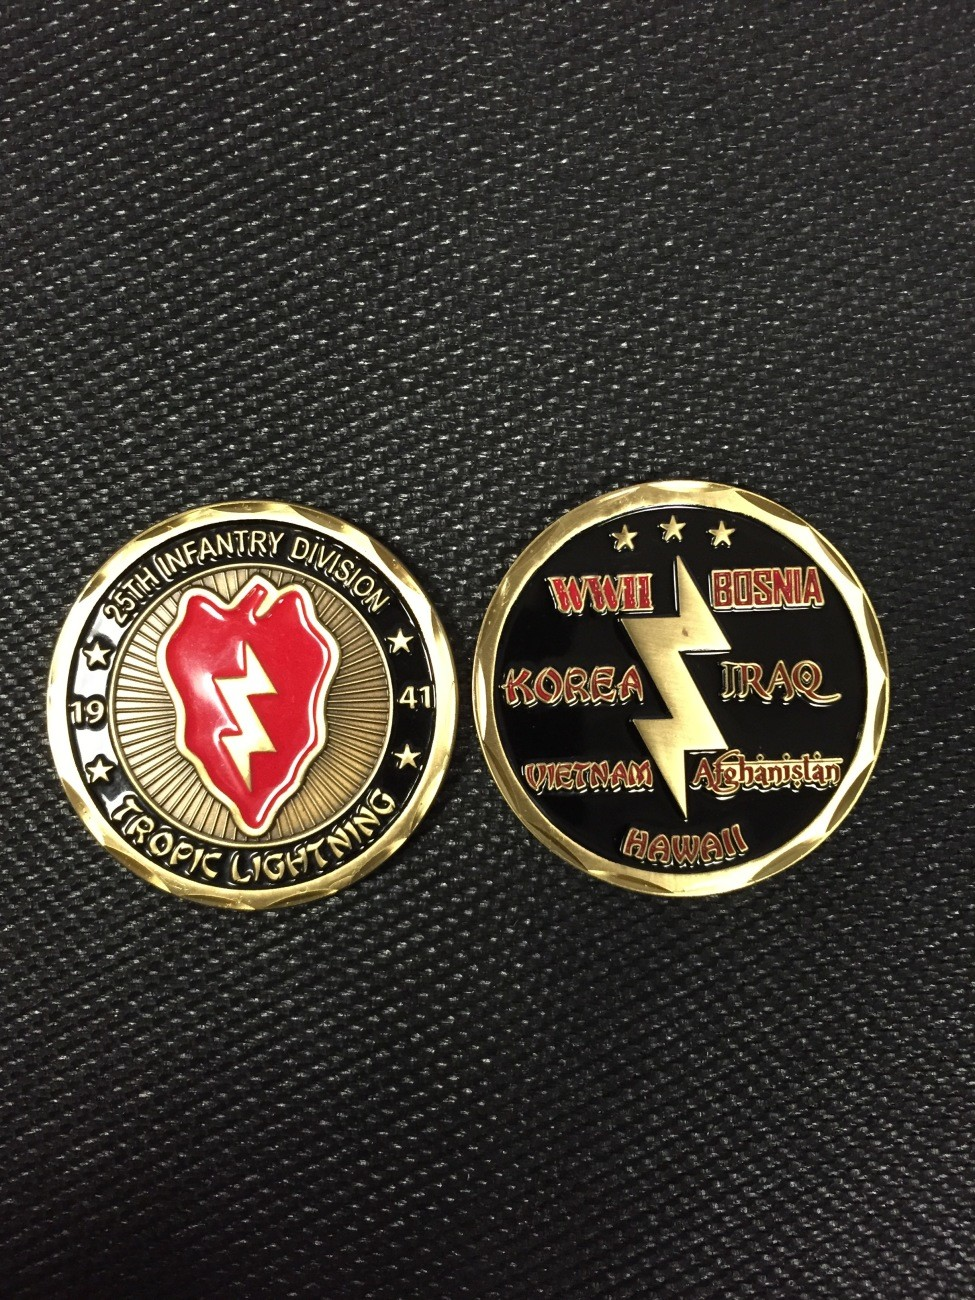 25th ID Challenge Coin with Campaigns on Back